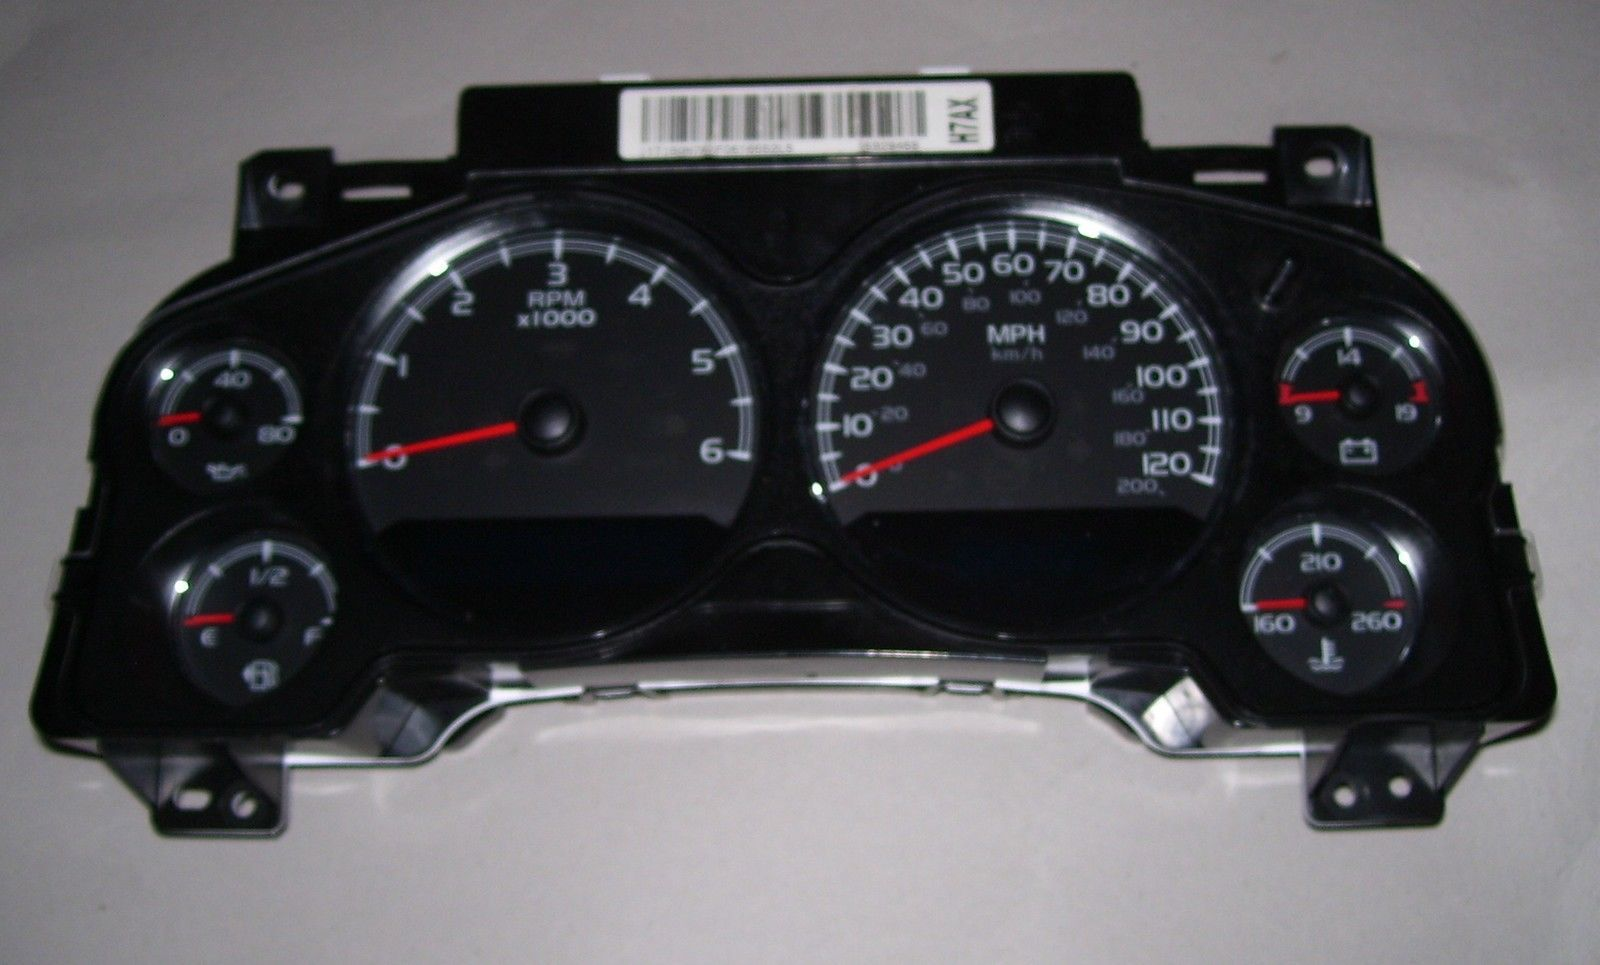 Chevy Silverado Gauge Cluster Repair on 2009 gmc sierra gauge clusters